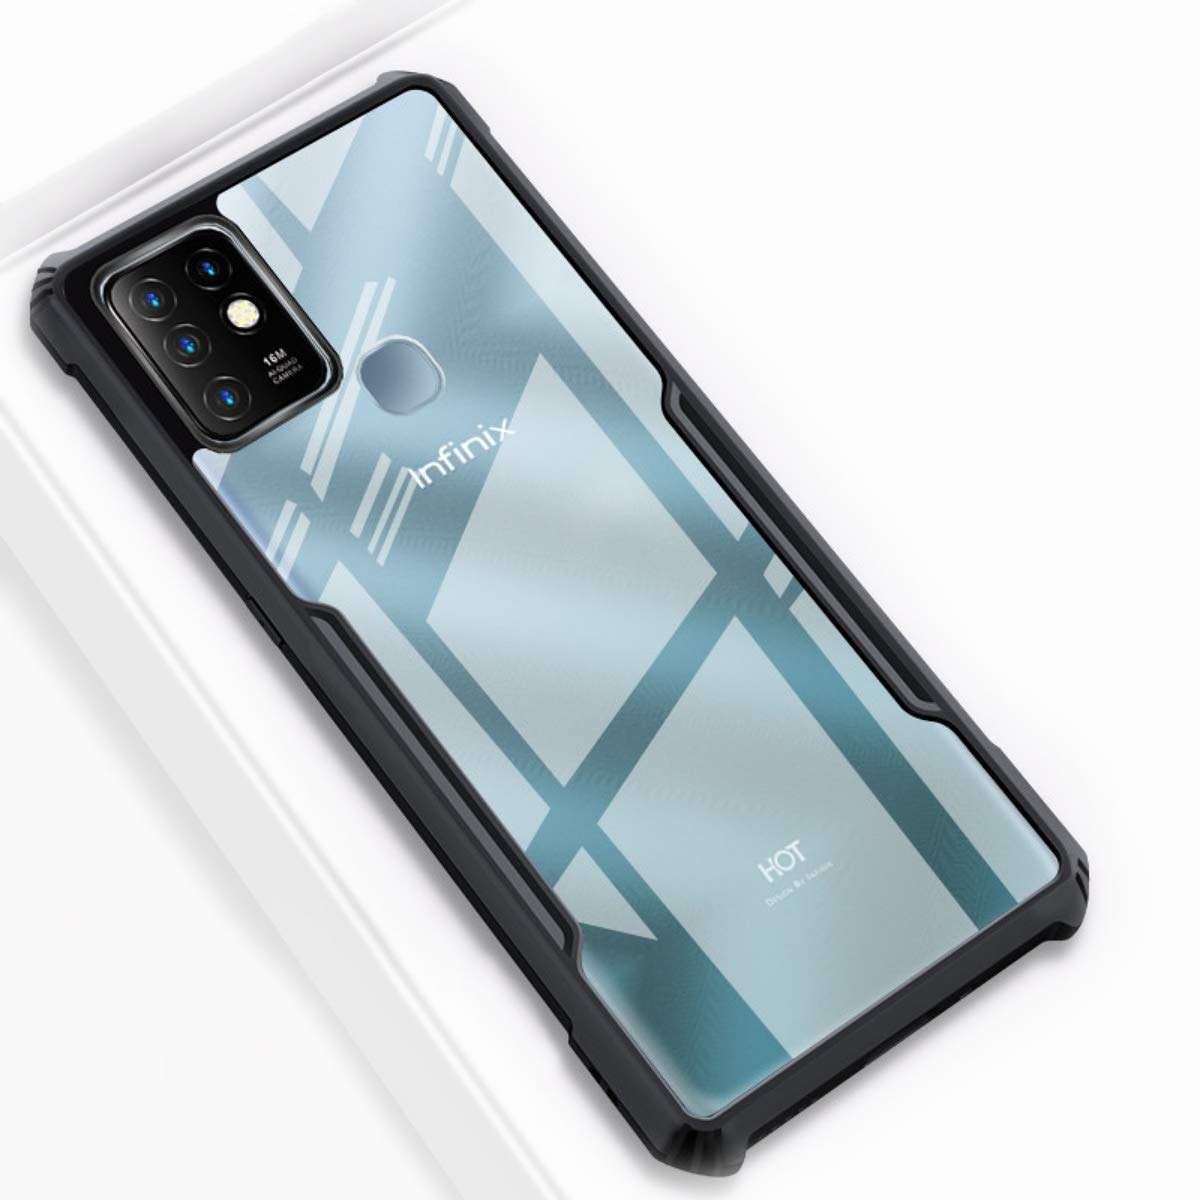 Infinix Hot 10S , Infinix Hot 10S Cam ,Infinix Hot 10S Camera test,Infinix Hot 10S Screen Repair, Infinix Hot 10S Camera, Infinix Hot 10S Unboxing, Infinix Hot 10S Hands-on